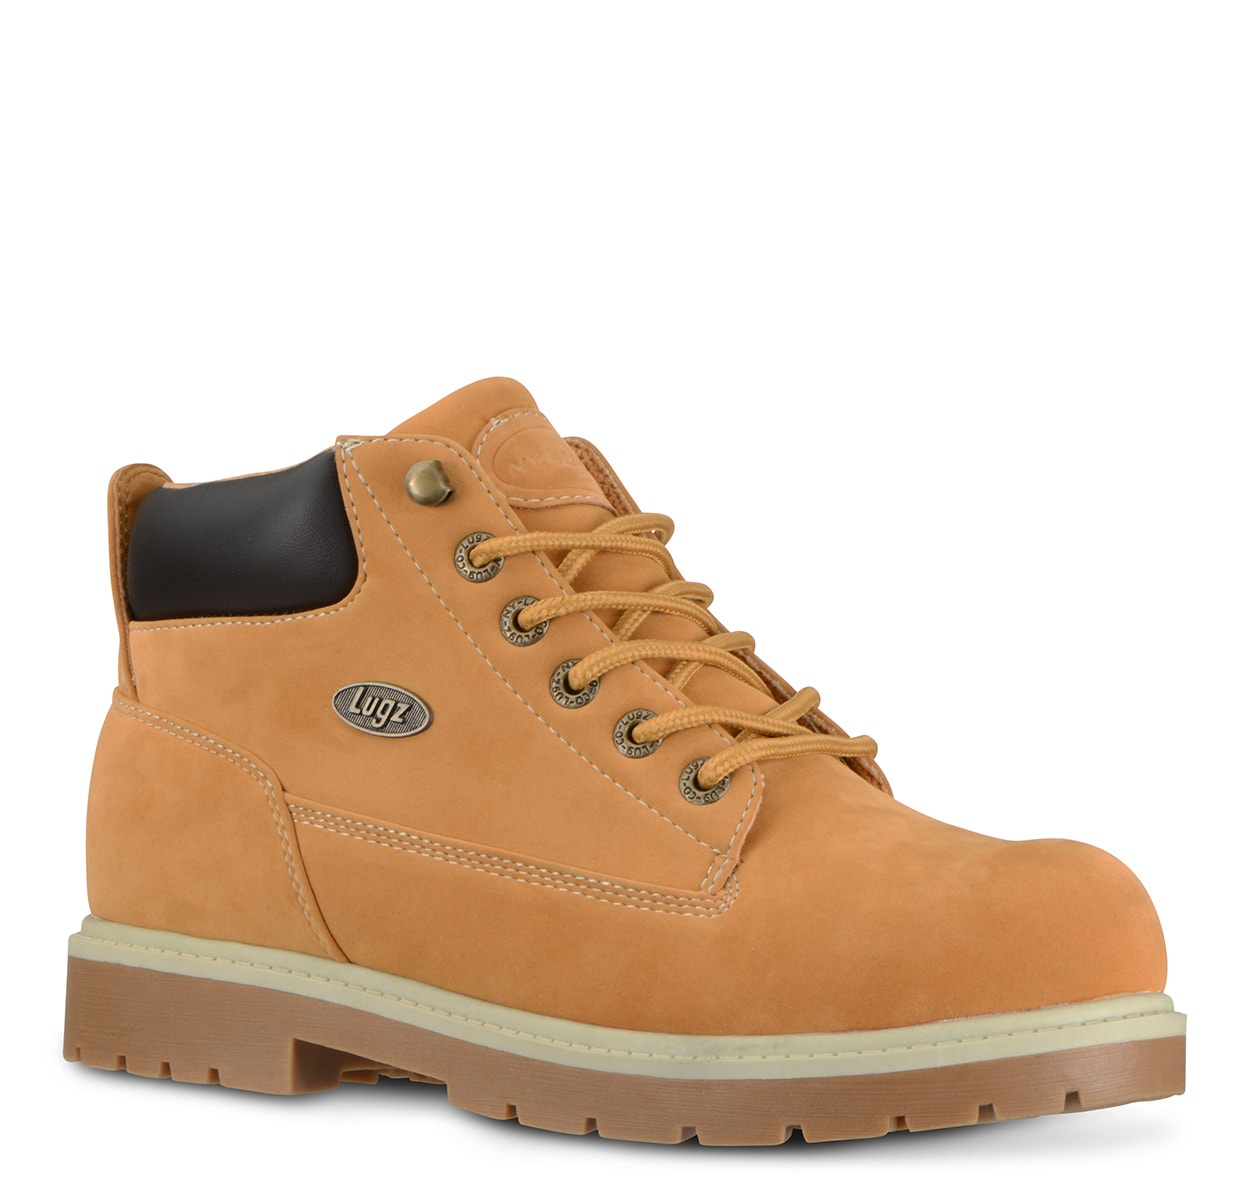 Lugz is a boot and athletic brand by family owned Jack Schwartz Shoe Company Inc, (JSSI). The brand was established in October and was aimed toward the urban fashion consumer.